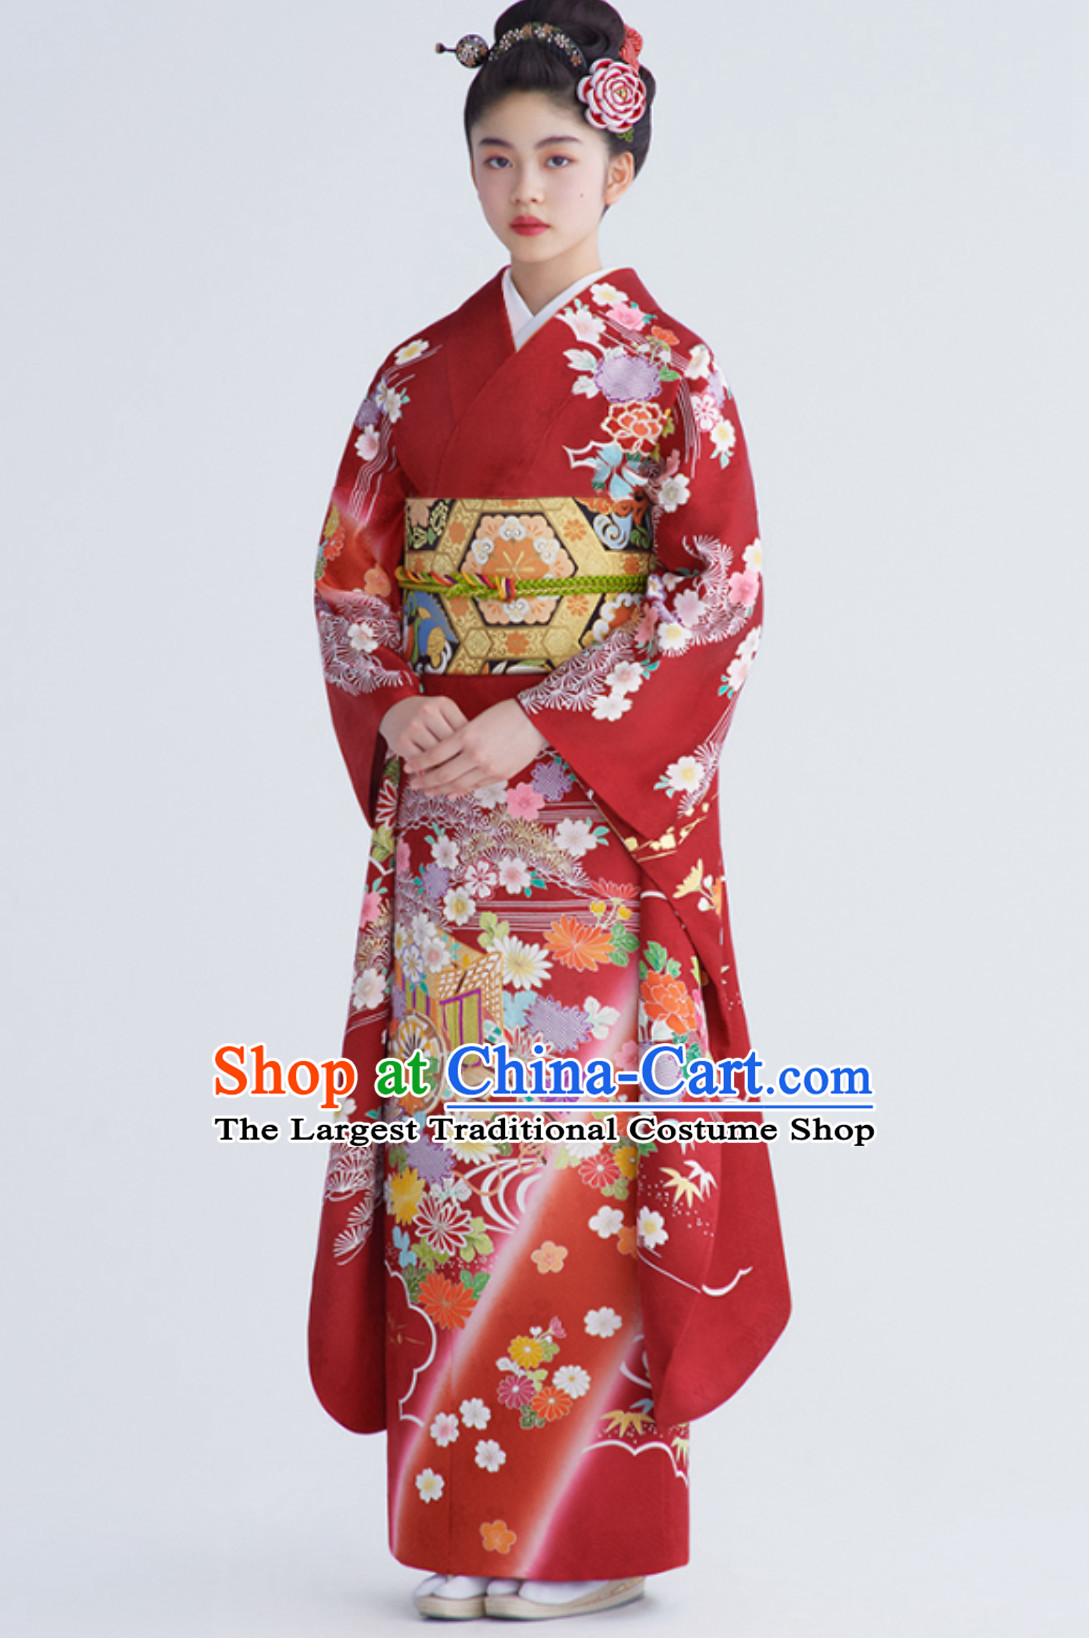 Traditional Asian Japan Clothing Japanese Fashion Apparel Printing Furisode Kimono Costume Complete Set for Women